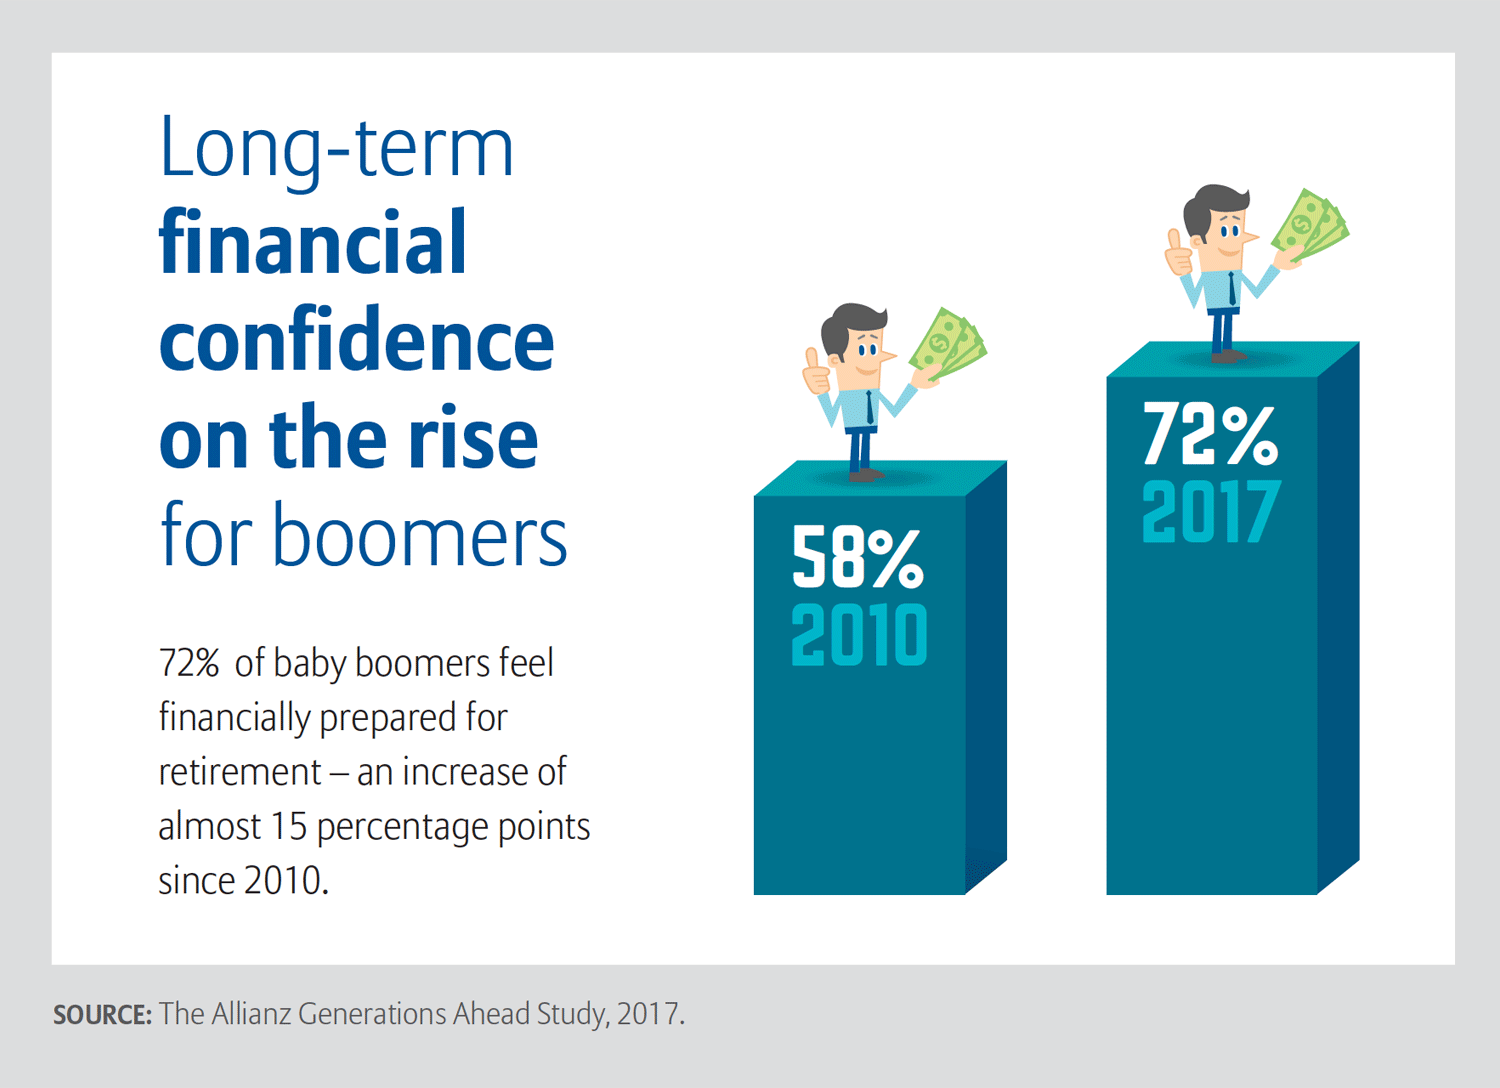 Allianz Generations Ahead - Boomer Confidence